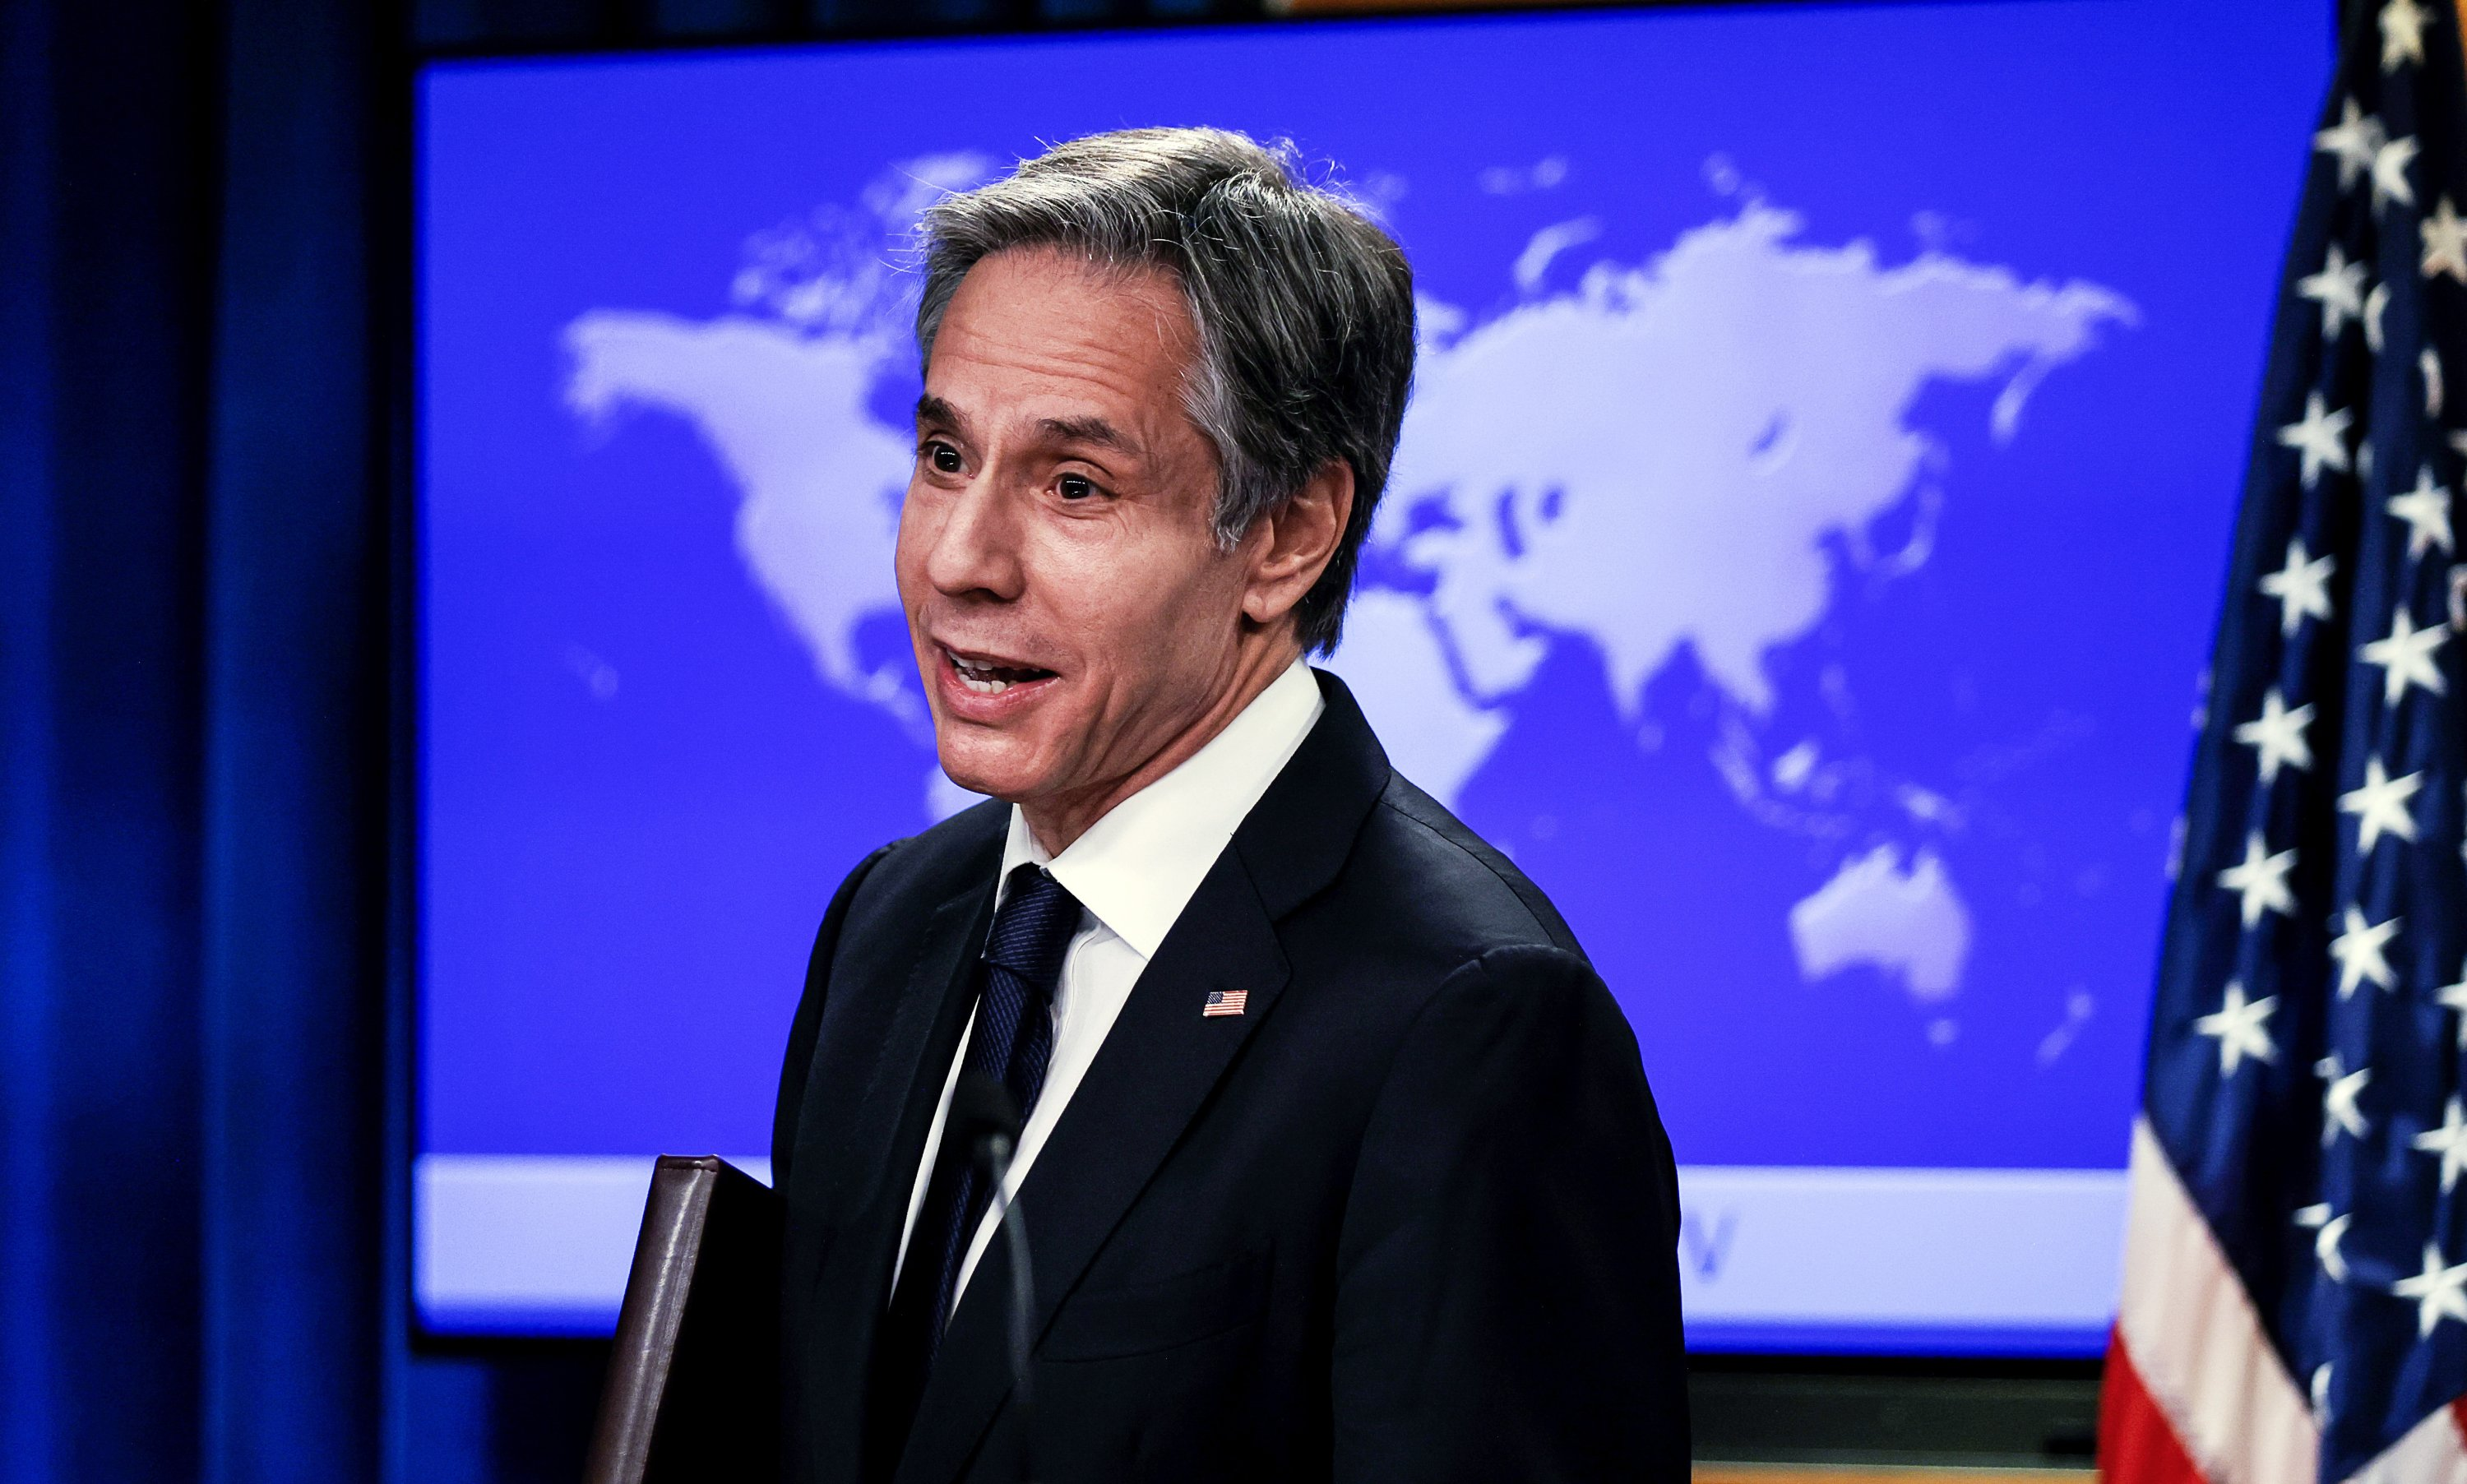 US will return to nuclear accord after Iran complies: Blinken